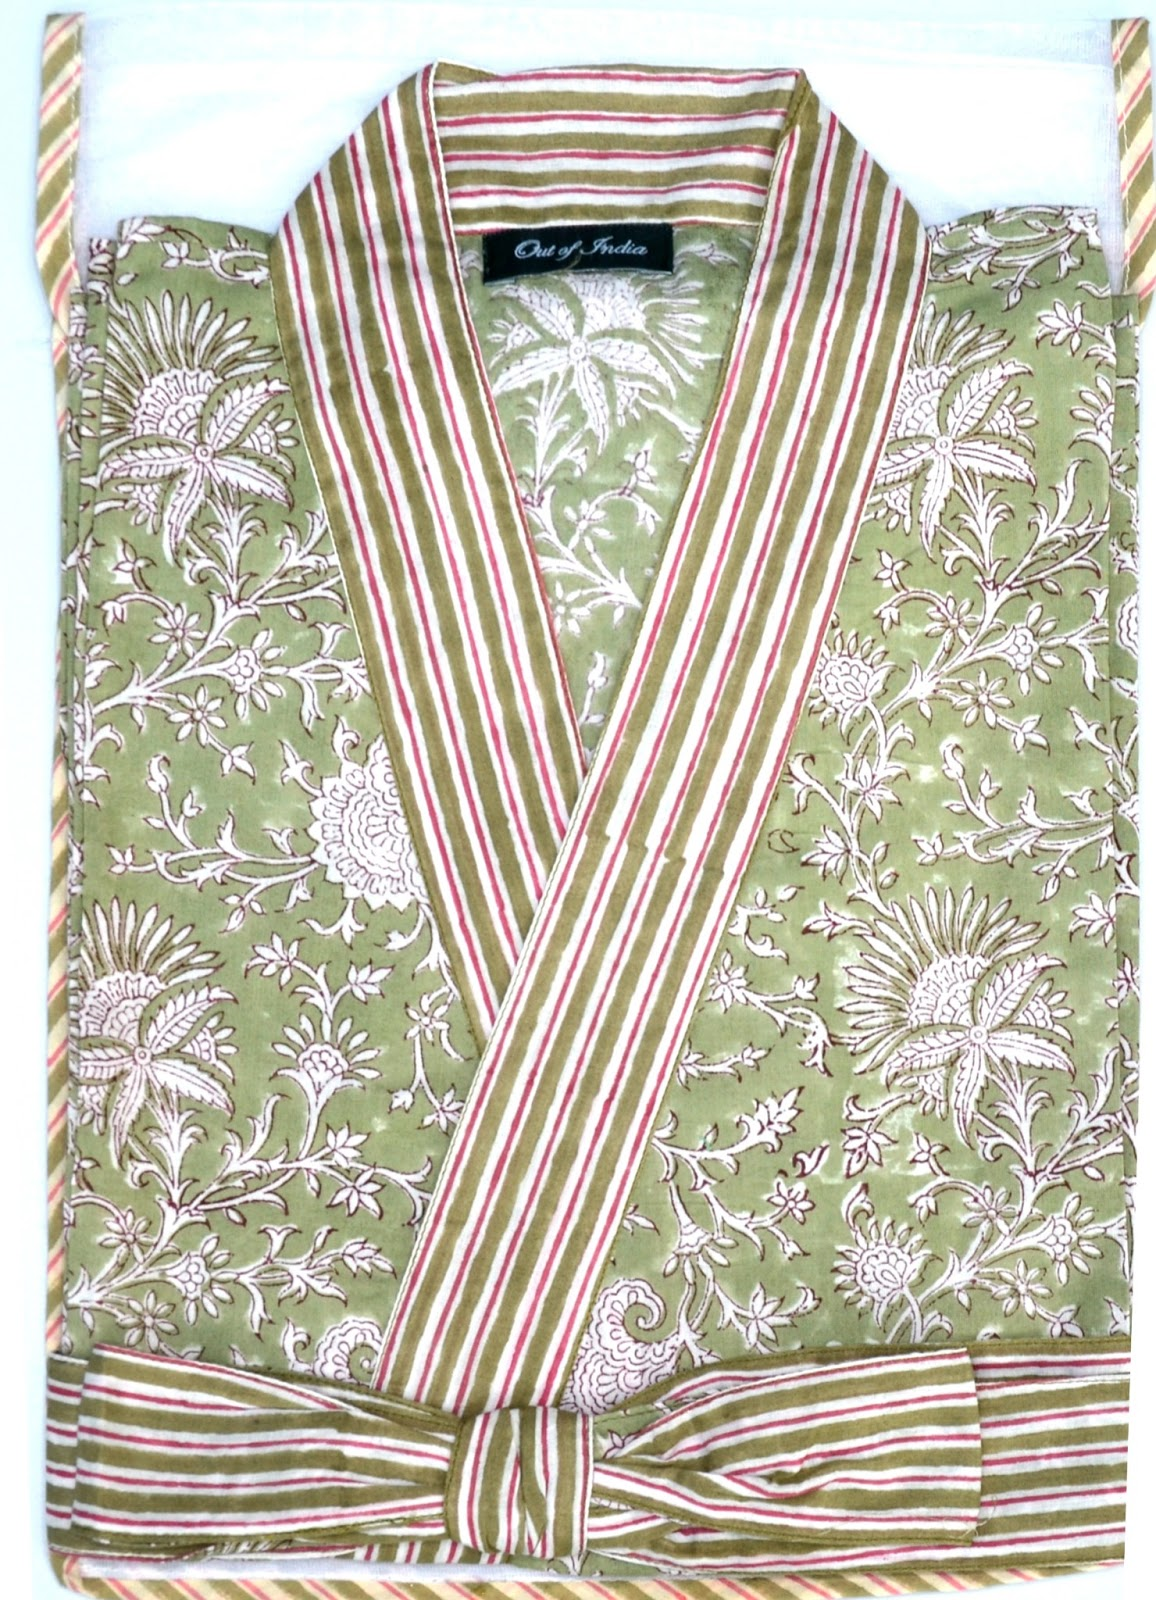 Out of India Textiles Ltd: Out Of India - Dressing Gowns